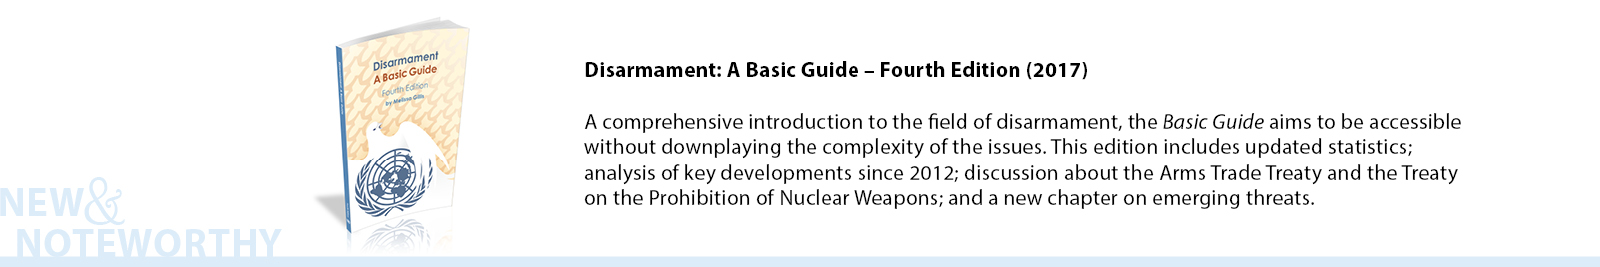 Conceived as a comprehensive introduction to a field central to the work of the United Nations, Disarmament: A Basic Guide aims to provide a useful overview of the nuanced challenges of building a more peaceful world in the twenty-first century. It was written with the general reader in mind and it strives to be accessible without downplaying the complexity of the issues it explores.